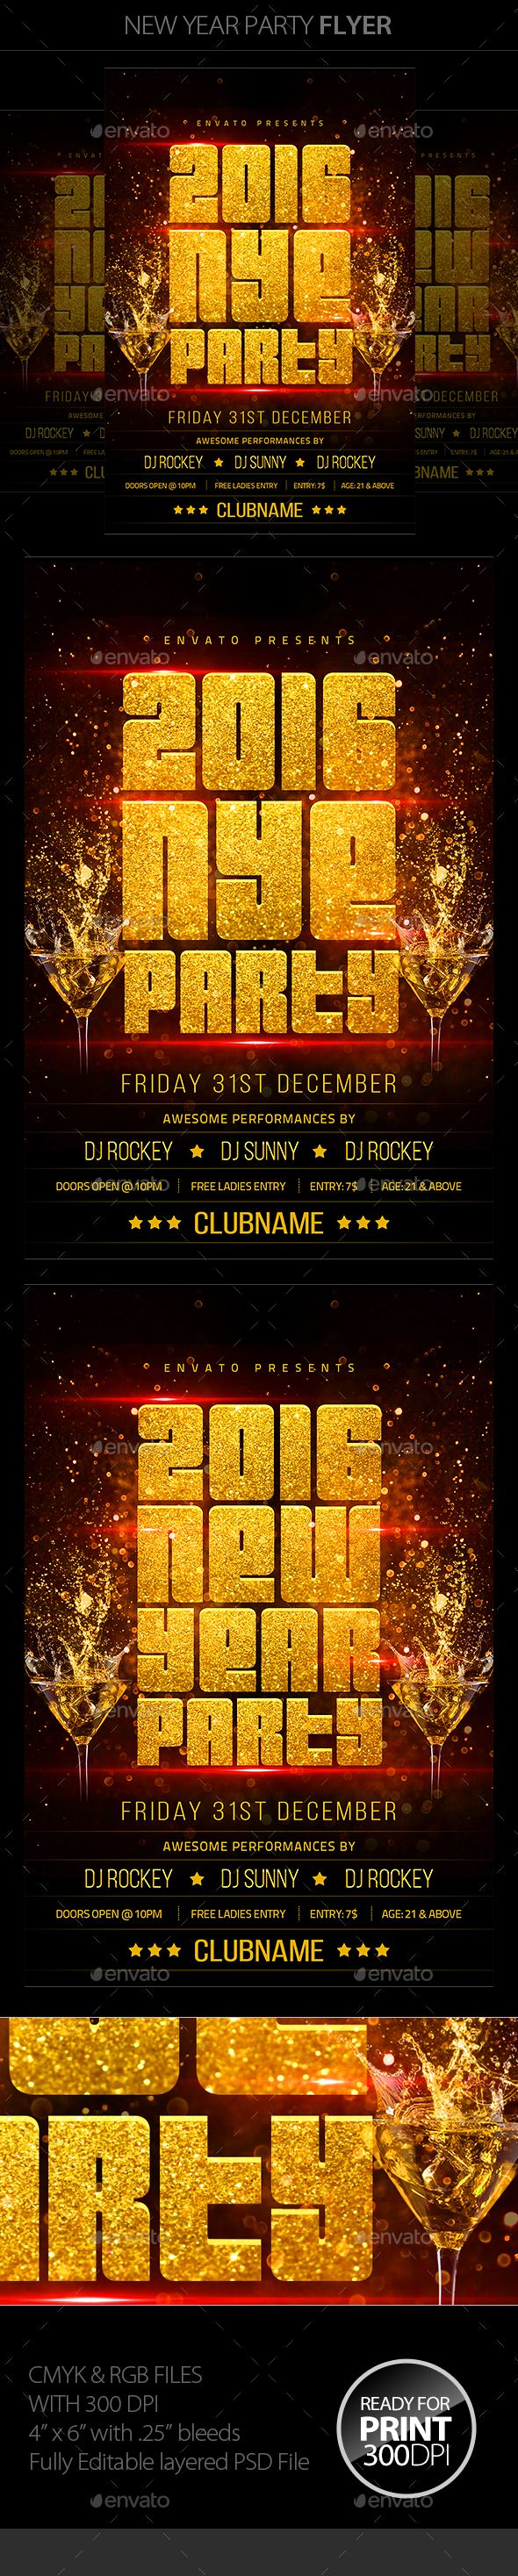 New Year Party Flyer Template PSD #design #nye Download: http://graphicriver.net/item/new-year-party-flyer/13493370?ref=ksioks